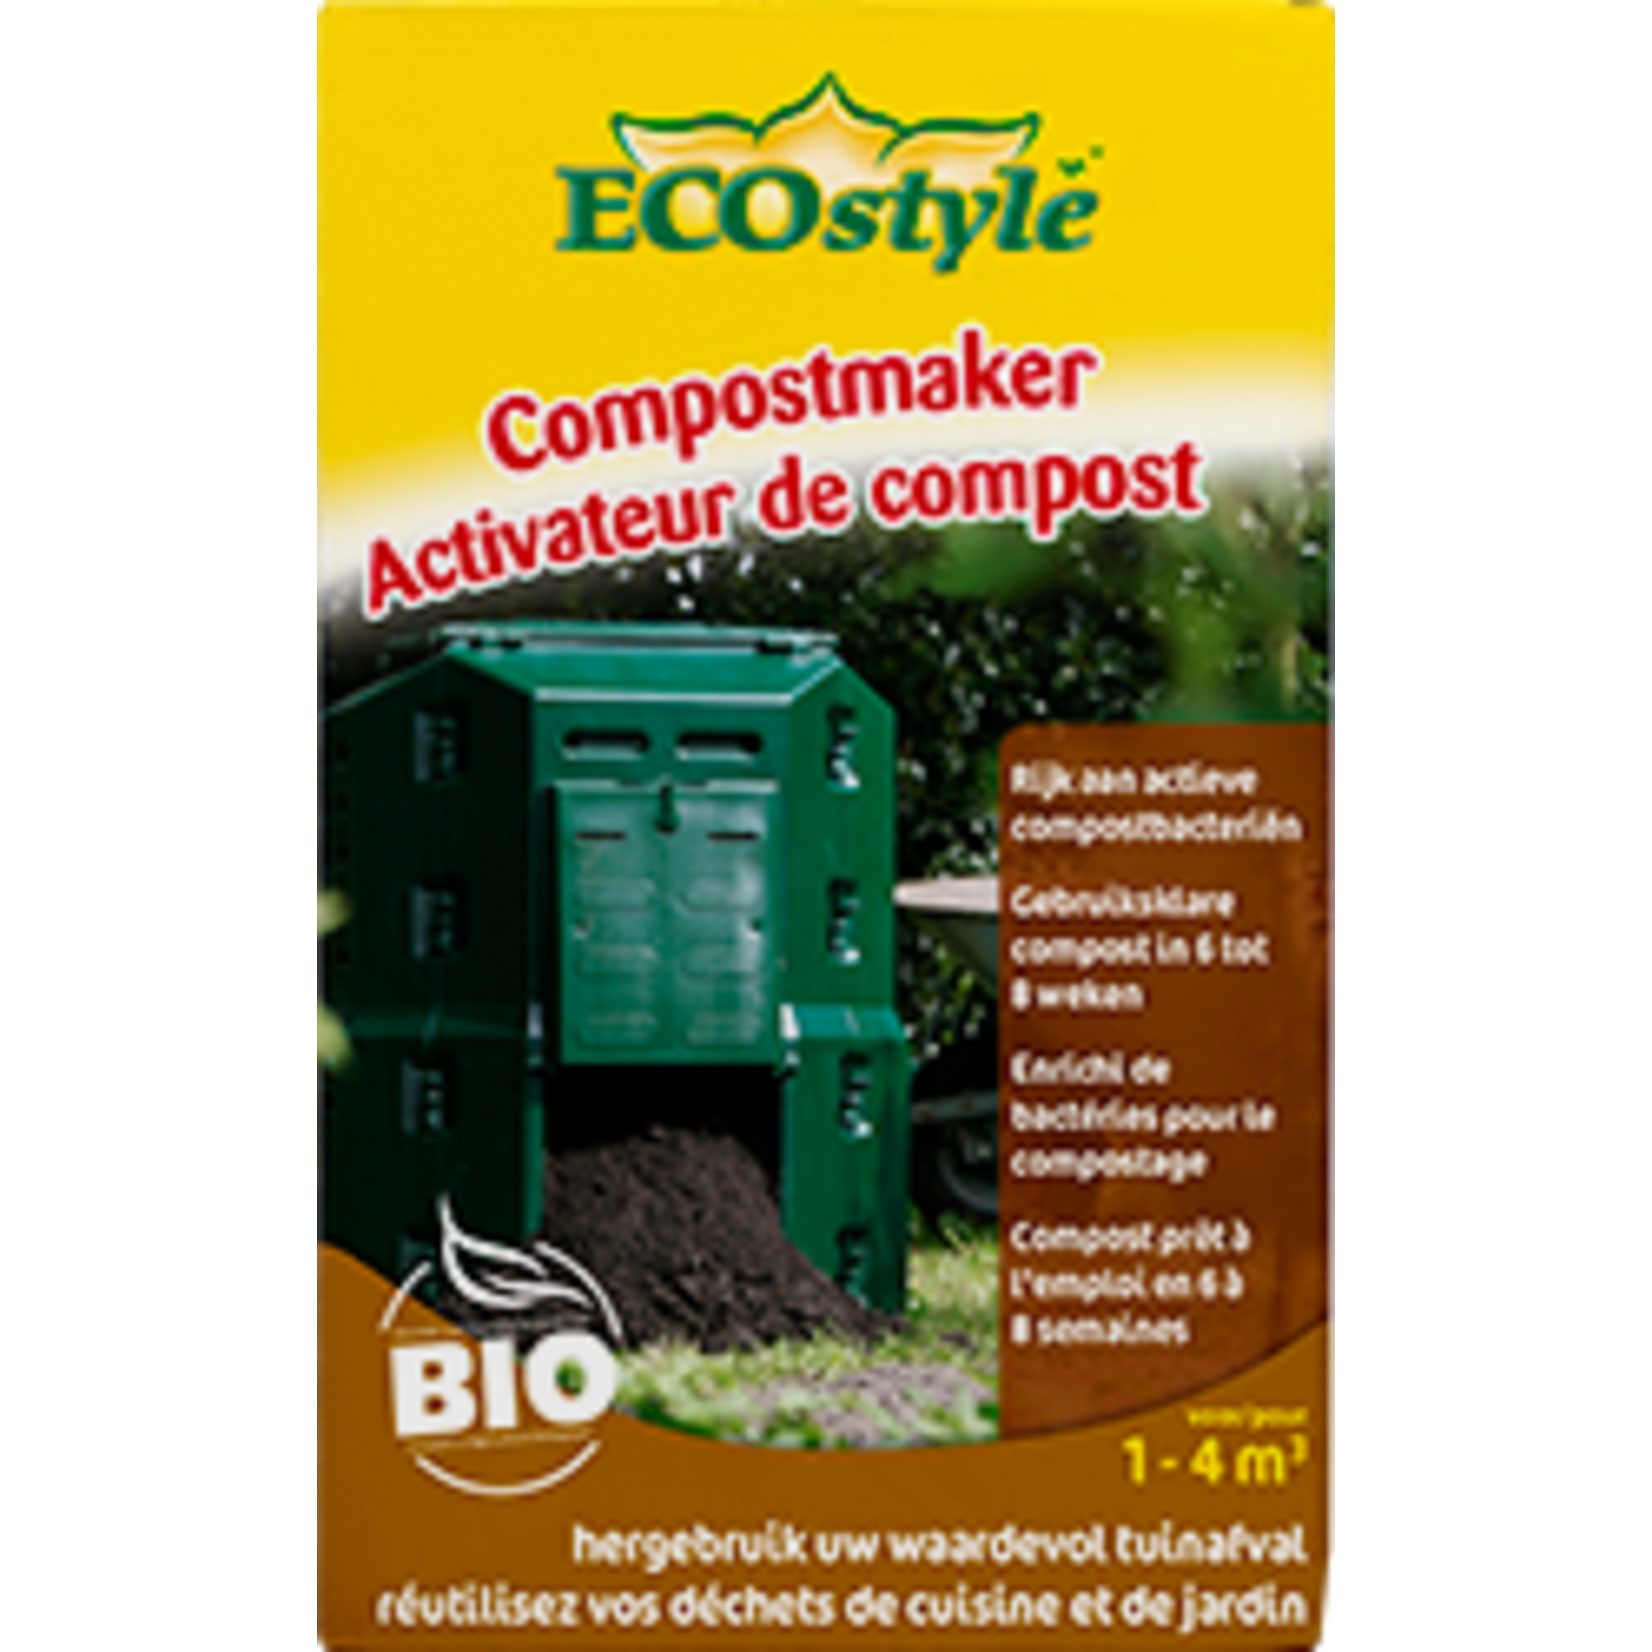 Ecostyle Compostmaker 800 g